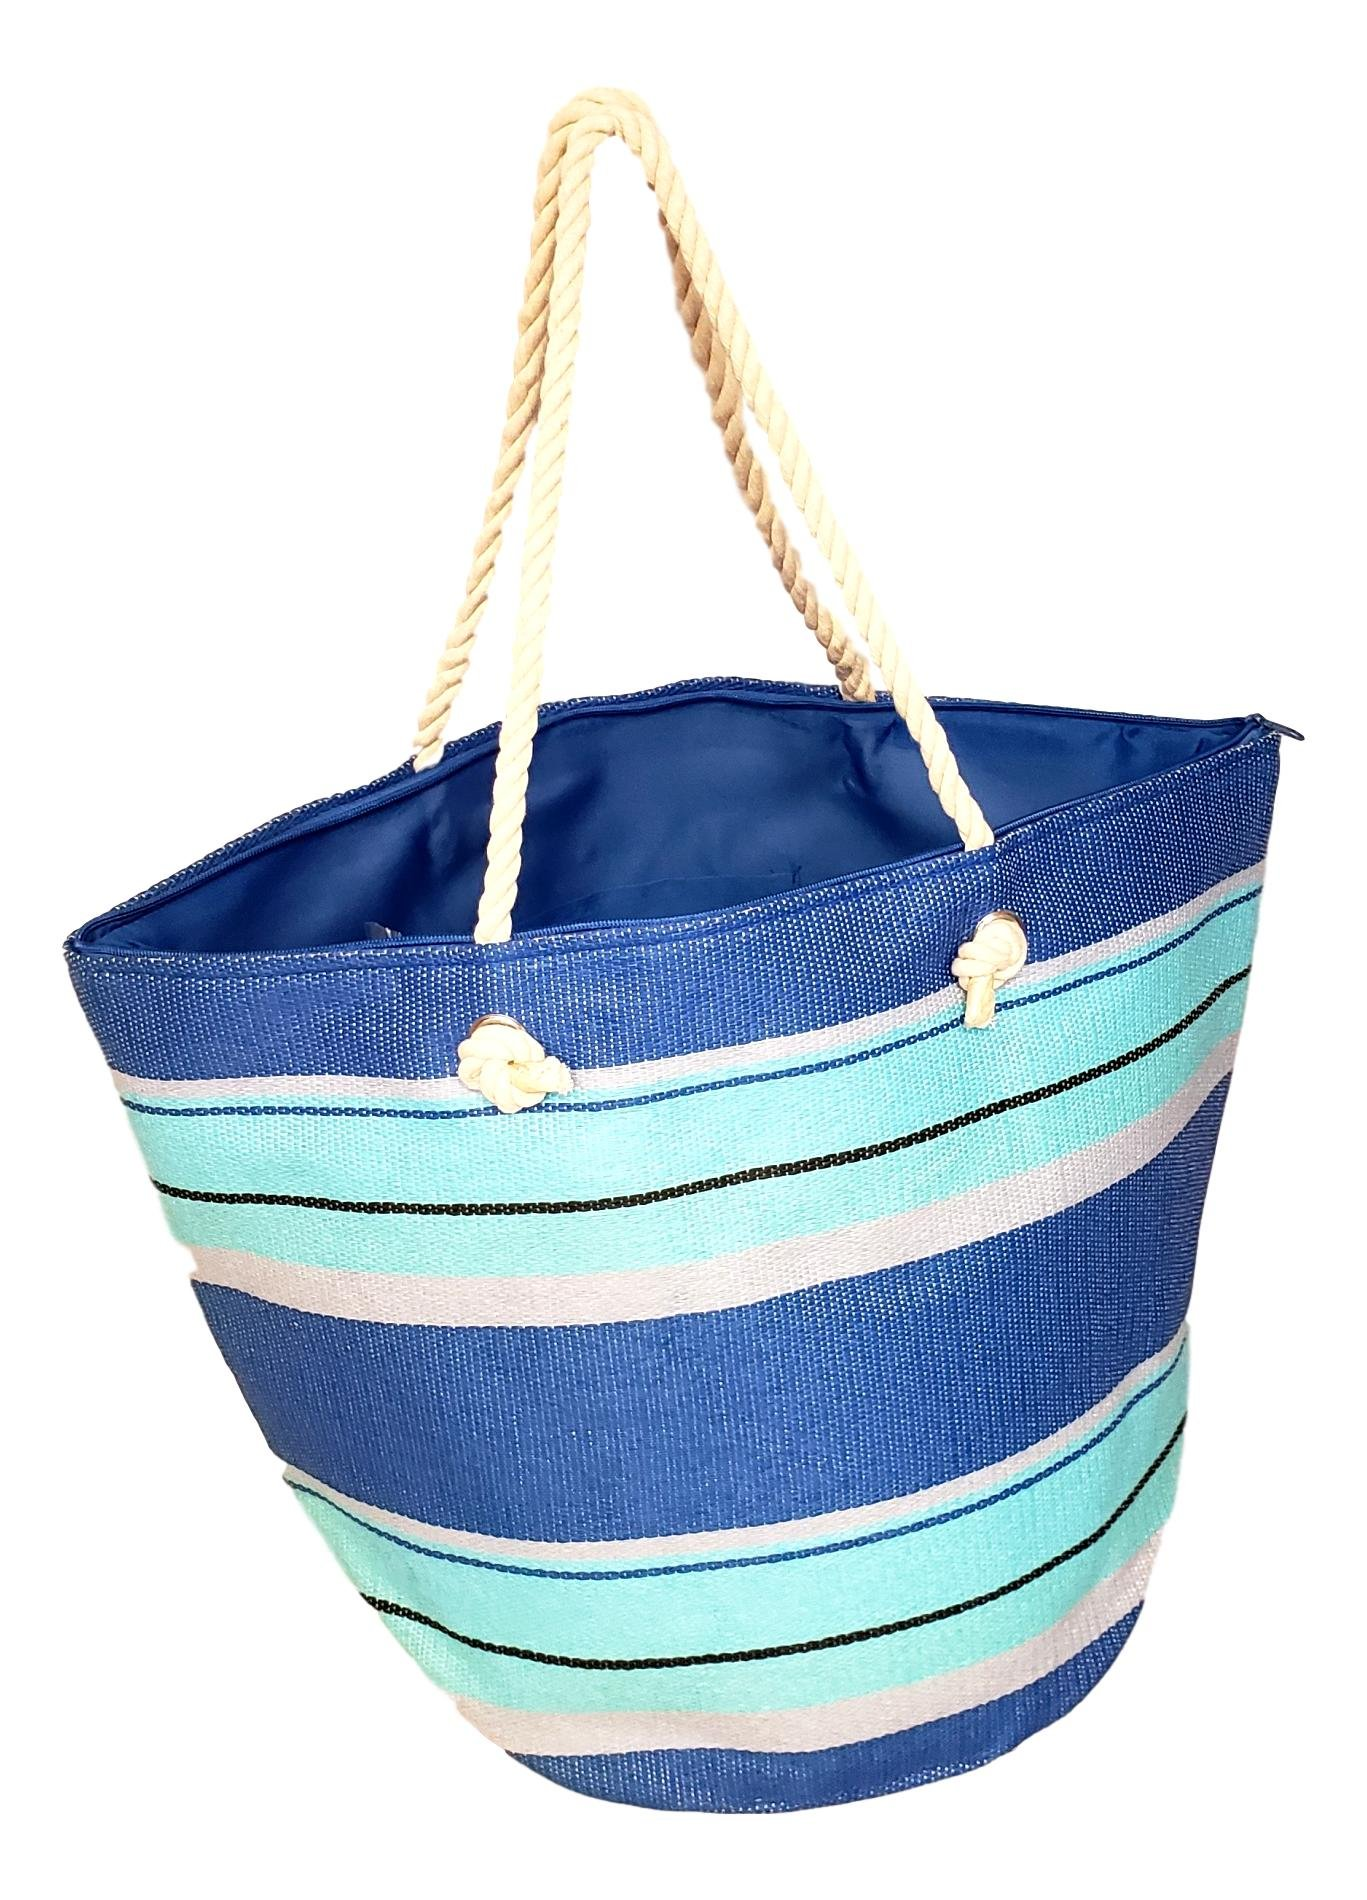 XL Hobo Bucket Striped Summer Womens Beach Bag Tote with Zipper Top (Turquoise - Blue Stripe)